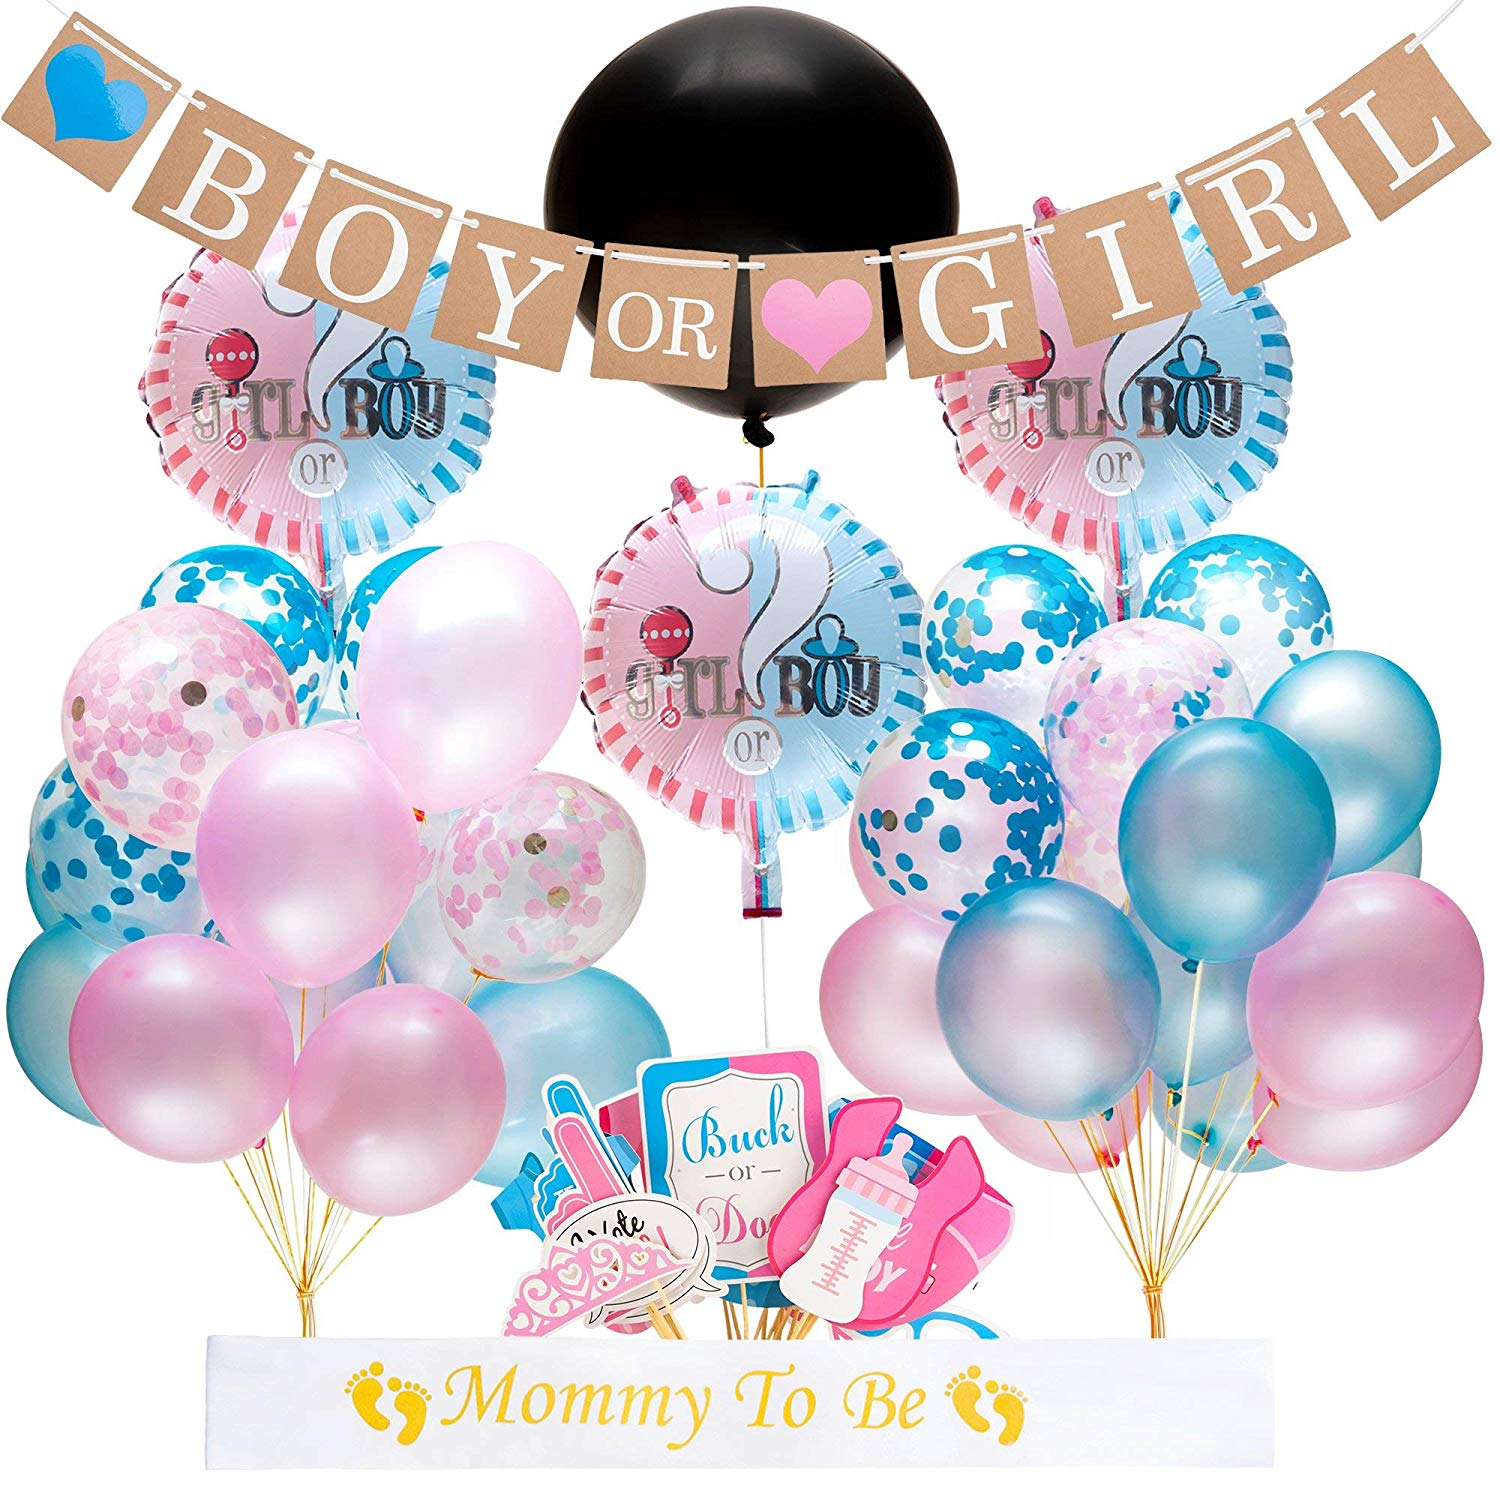 "Gender Reveal Party Supplies and Baby Shower Boy or Girl Kit (64 Pieces) - Including 36"" Reveal Balloon, Confetti Balloons, Banner, Photo Props and More - All You Need to Celebrate Your Little One"